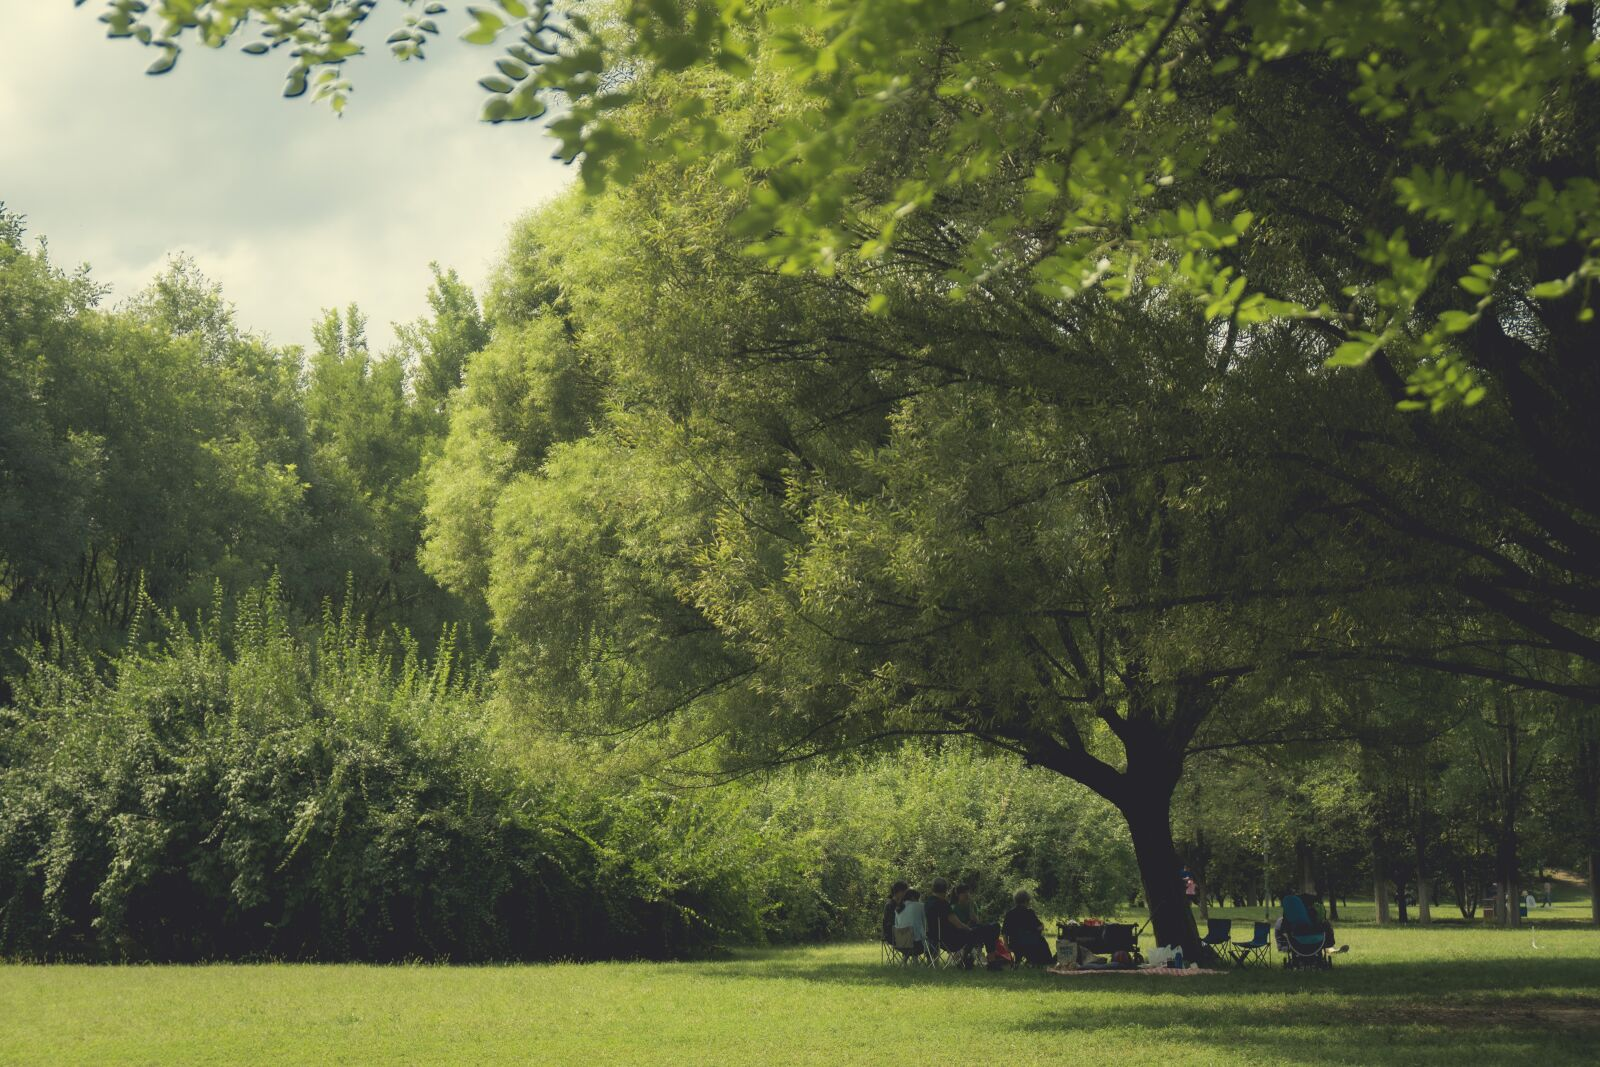 """Sony a6300 sample photo. """"People, green, grass"""" photography"""